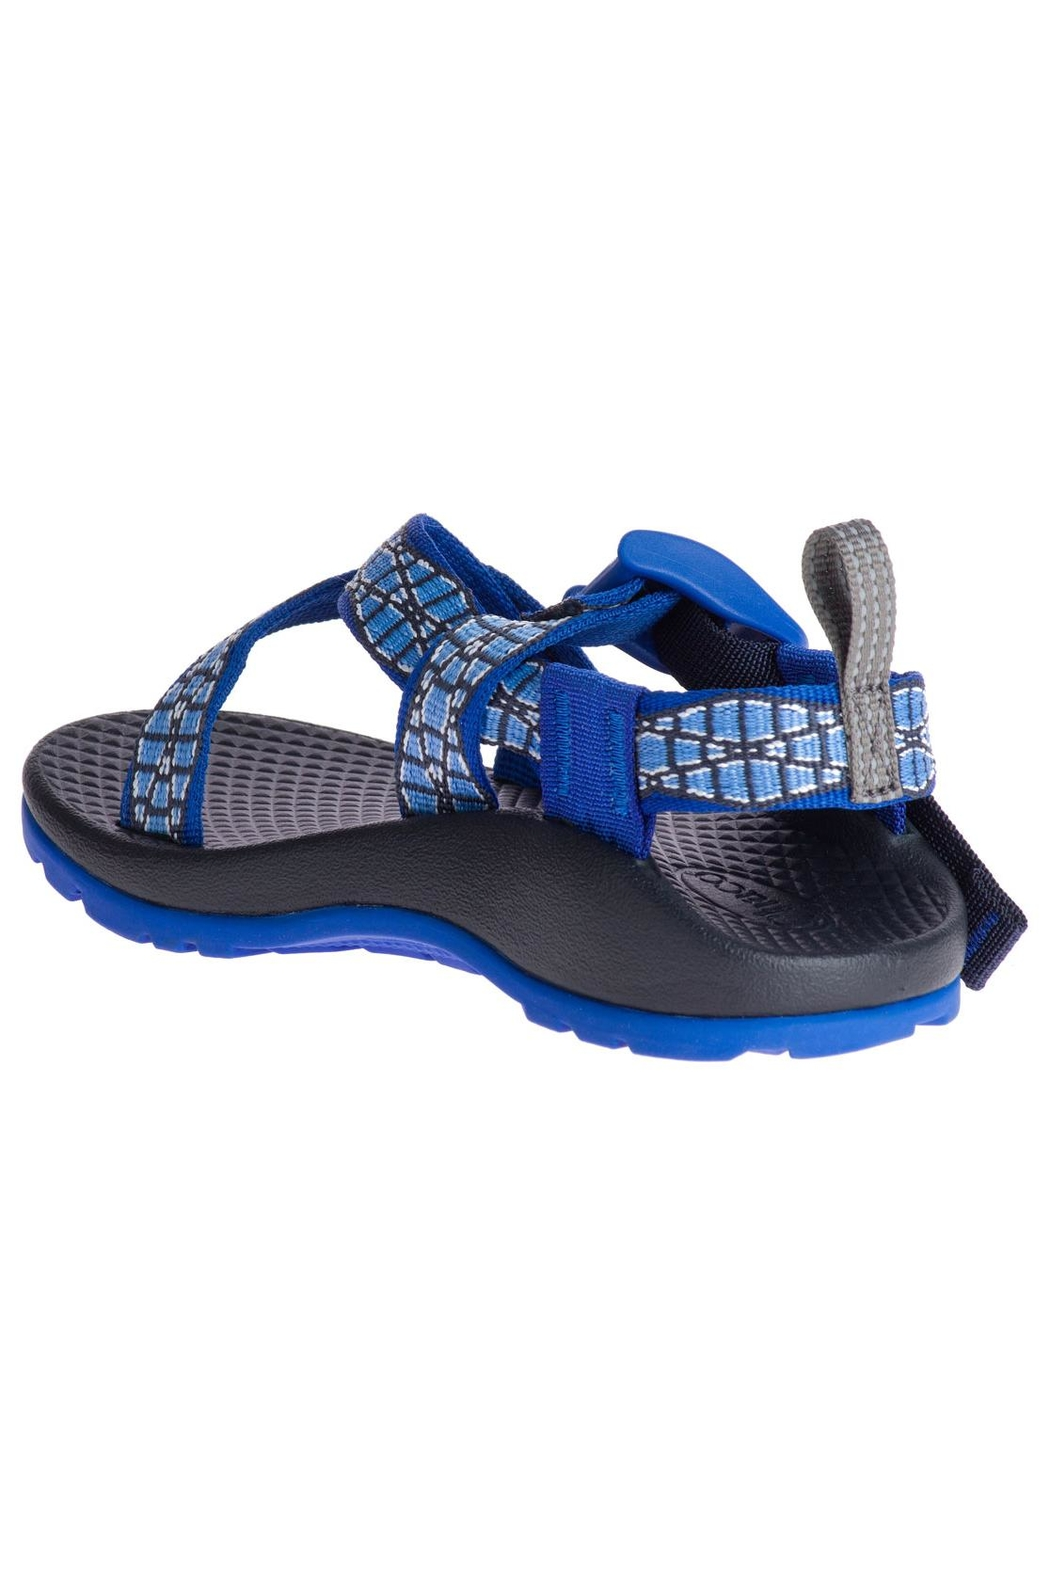 Chaco Kid's Z/1 Sandal - Side Cropped Image